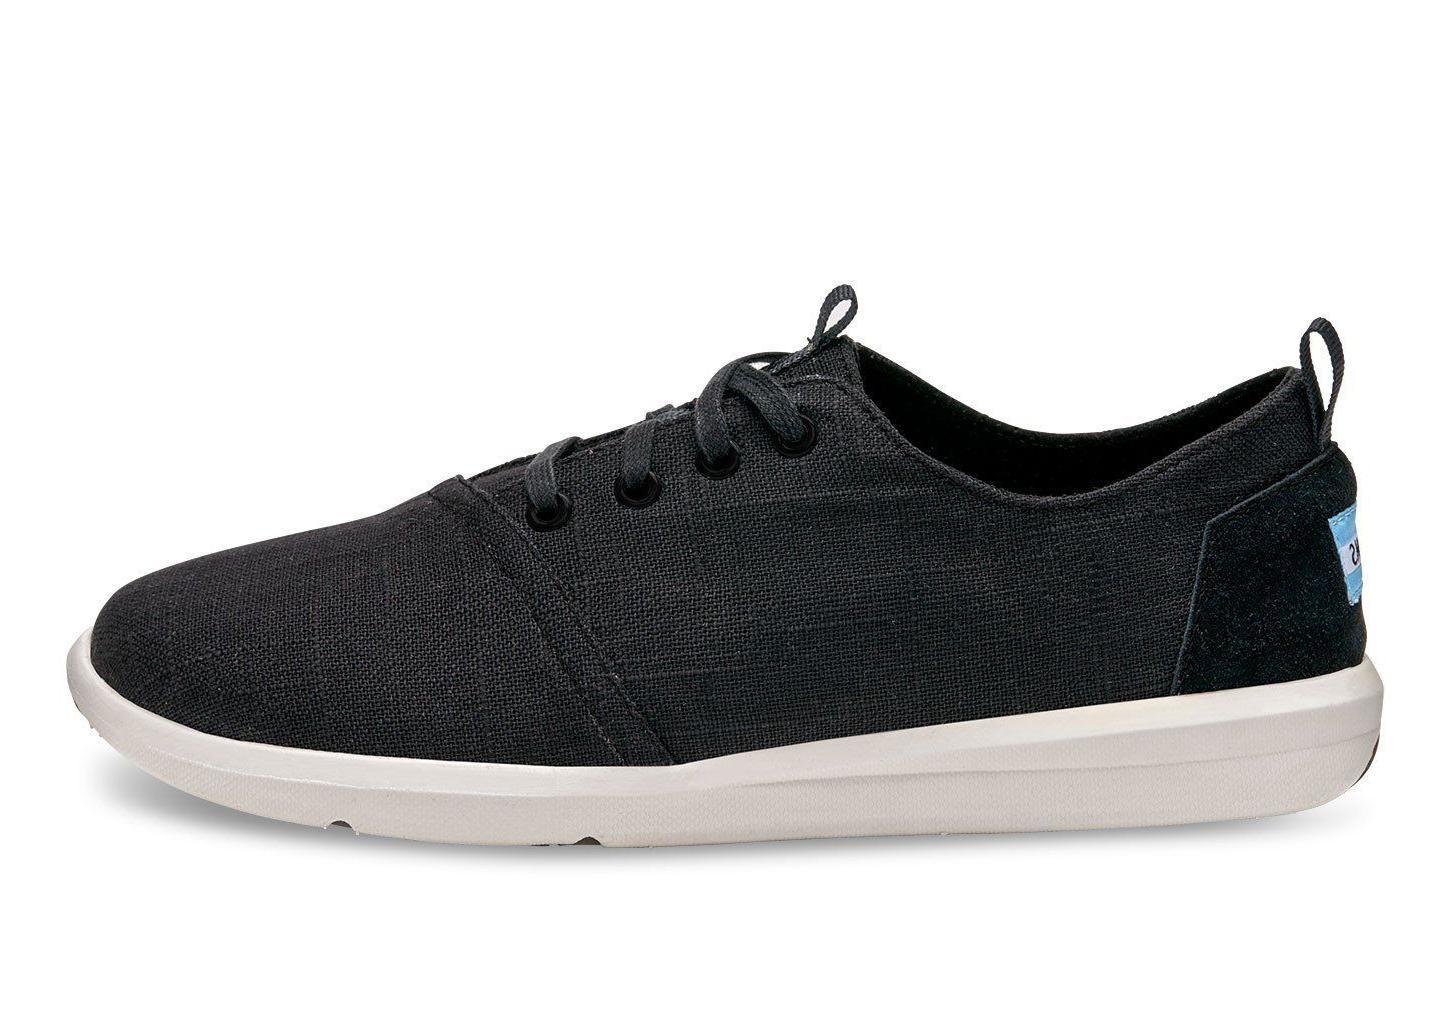 TOMS Del Sneakers choose